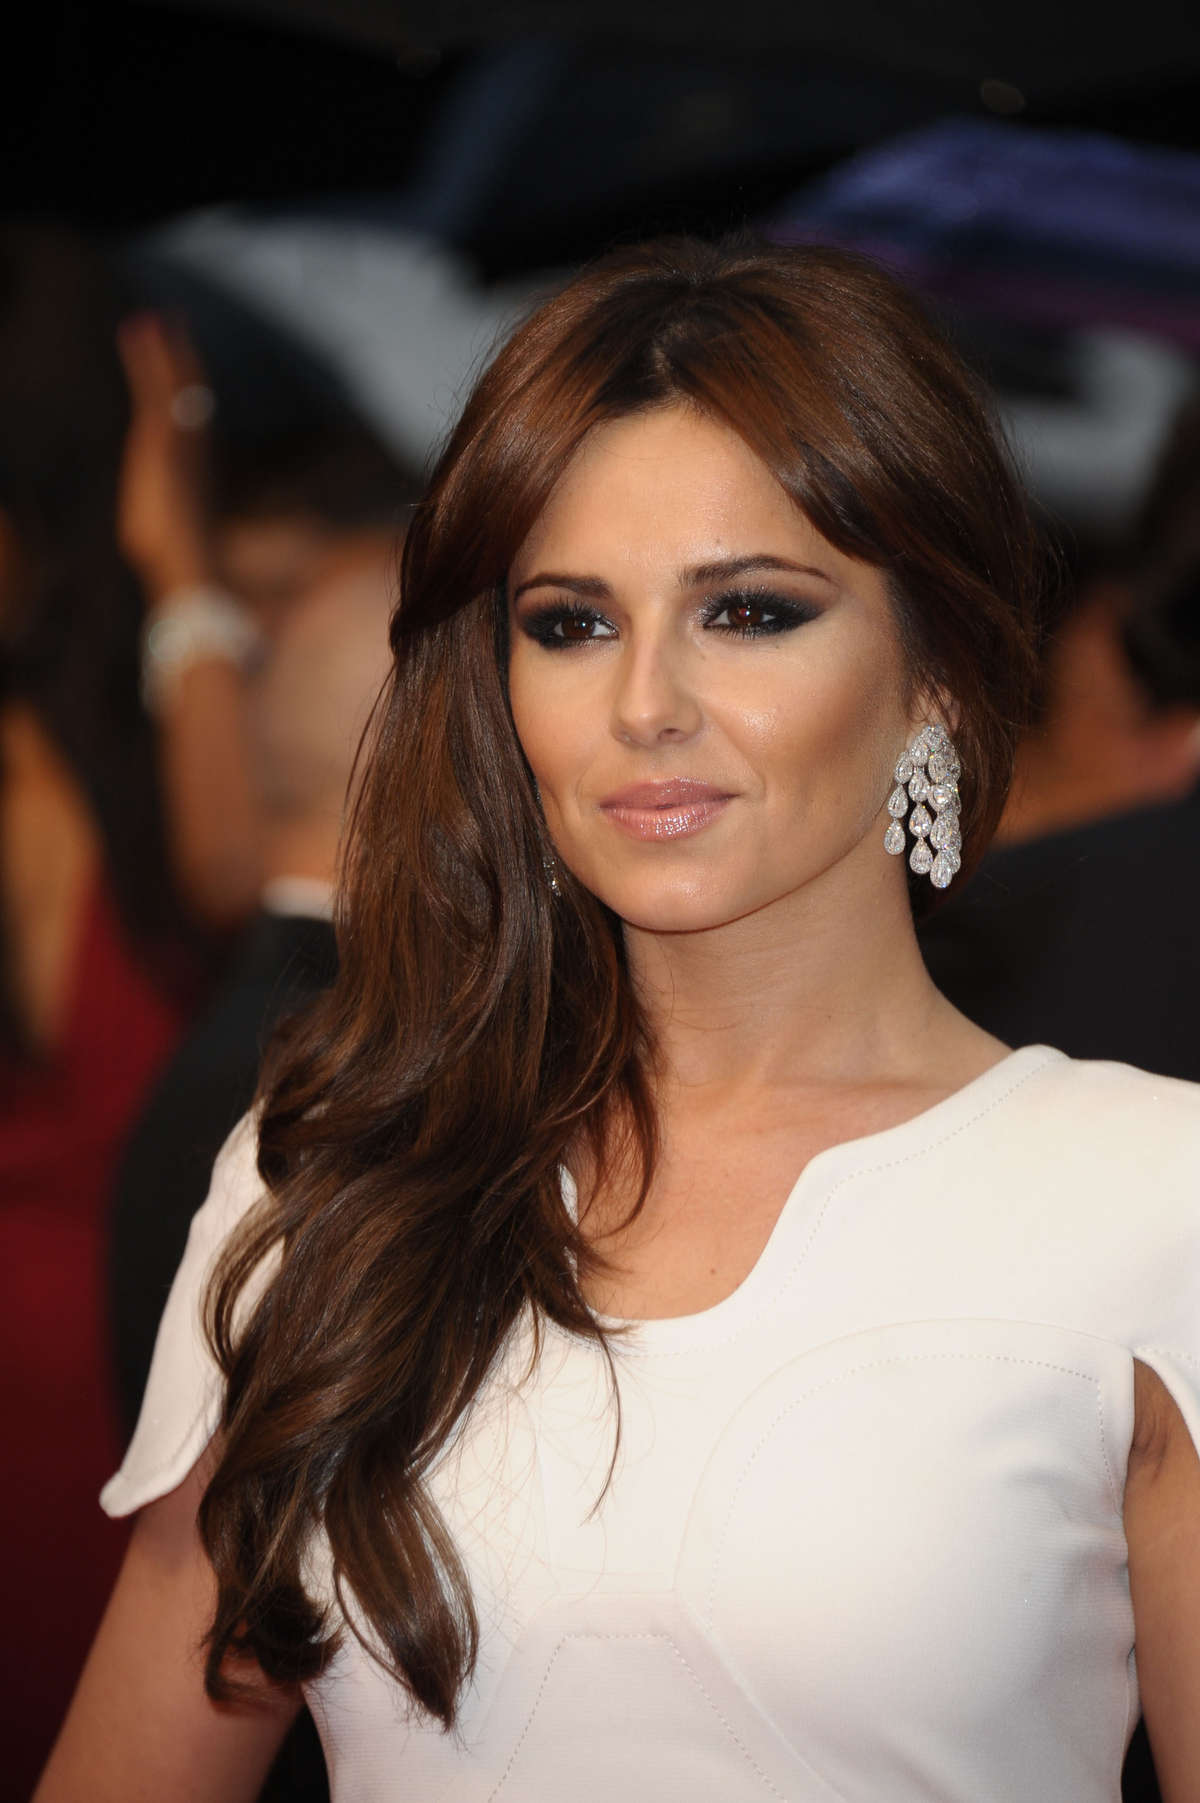 Cheryl Cole avoids pasta and alcohol before red carpet | TopNews Cheryl Cole